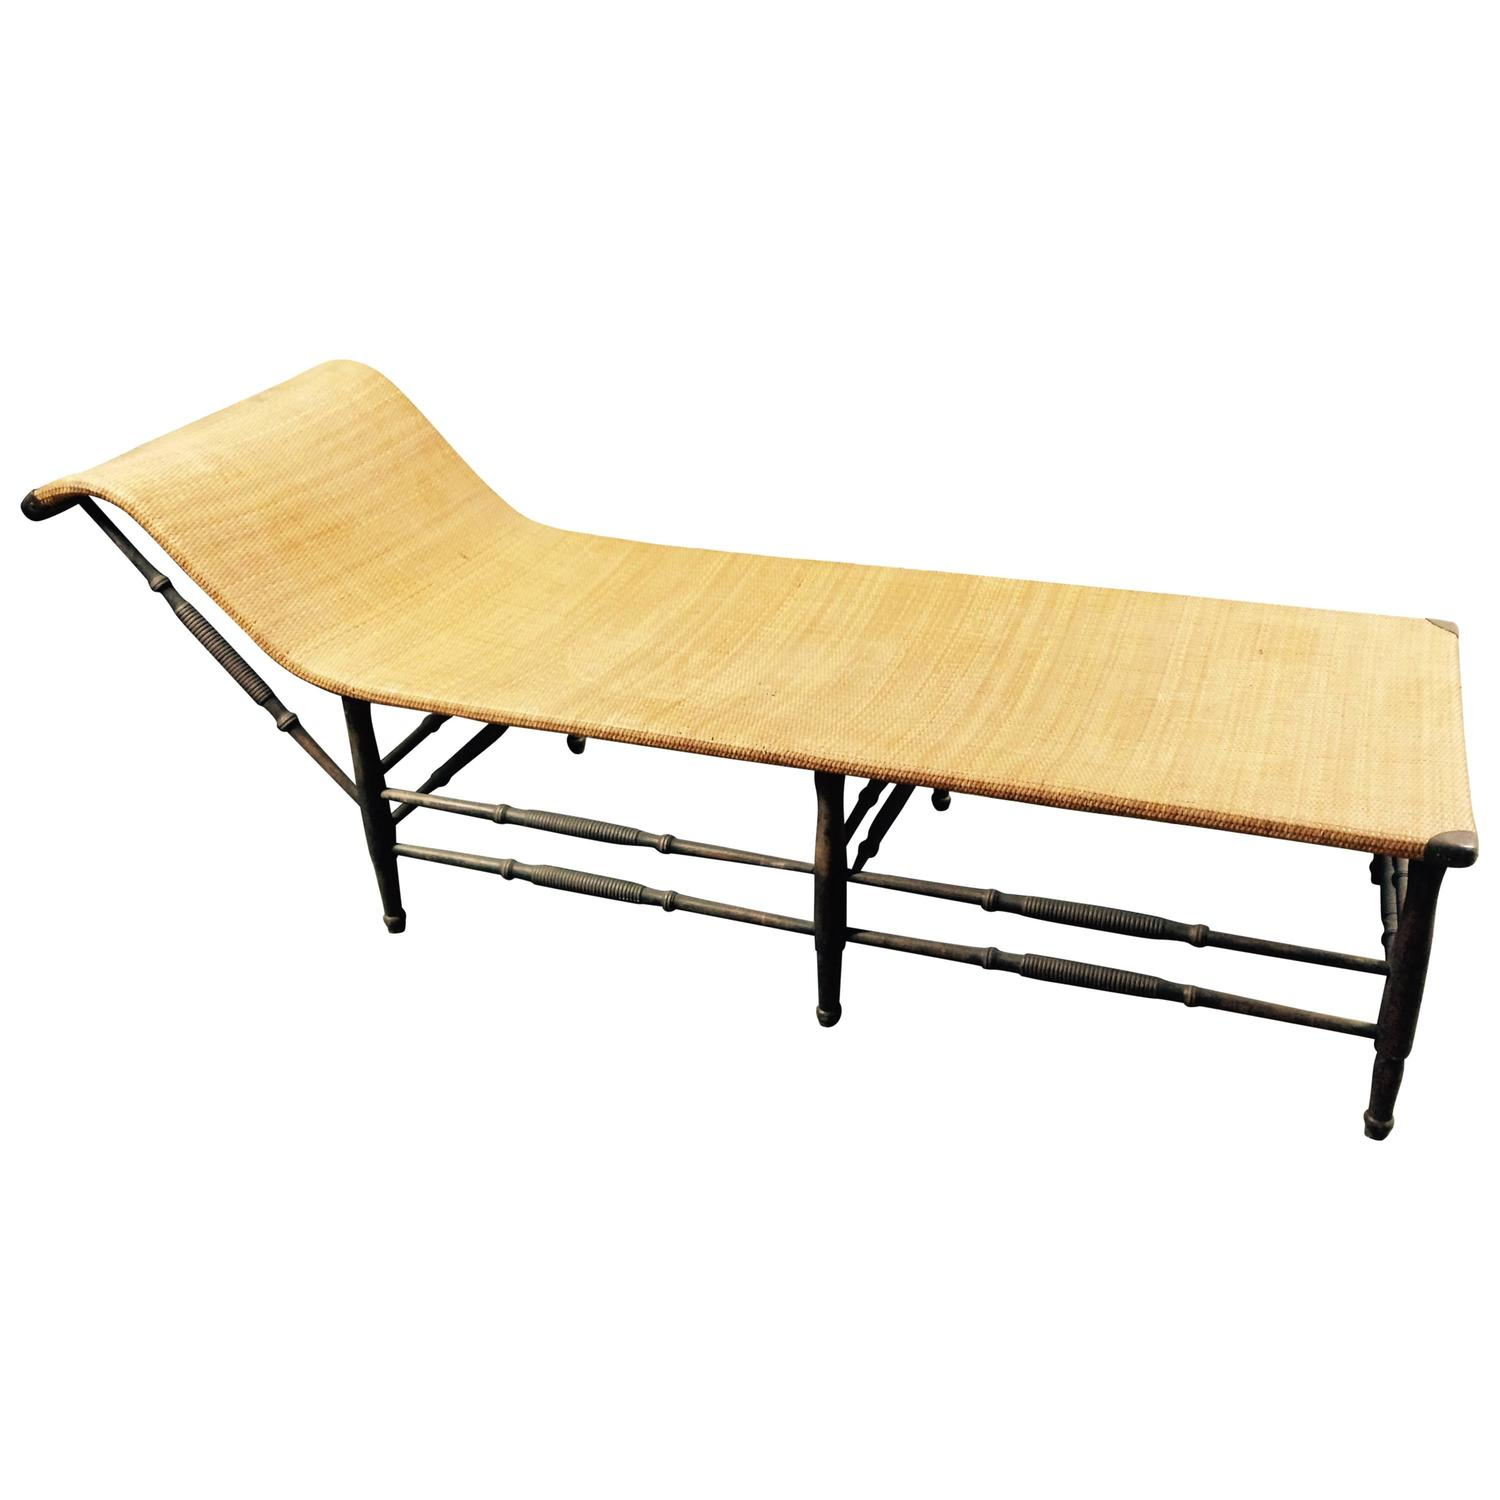 Antique rattan chaise longue for sale at 1stdibs for Antique chaise for sale